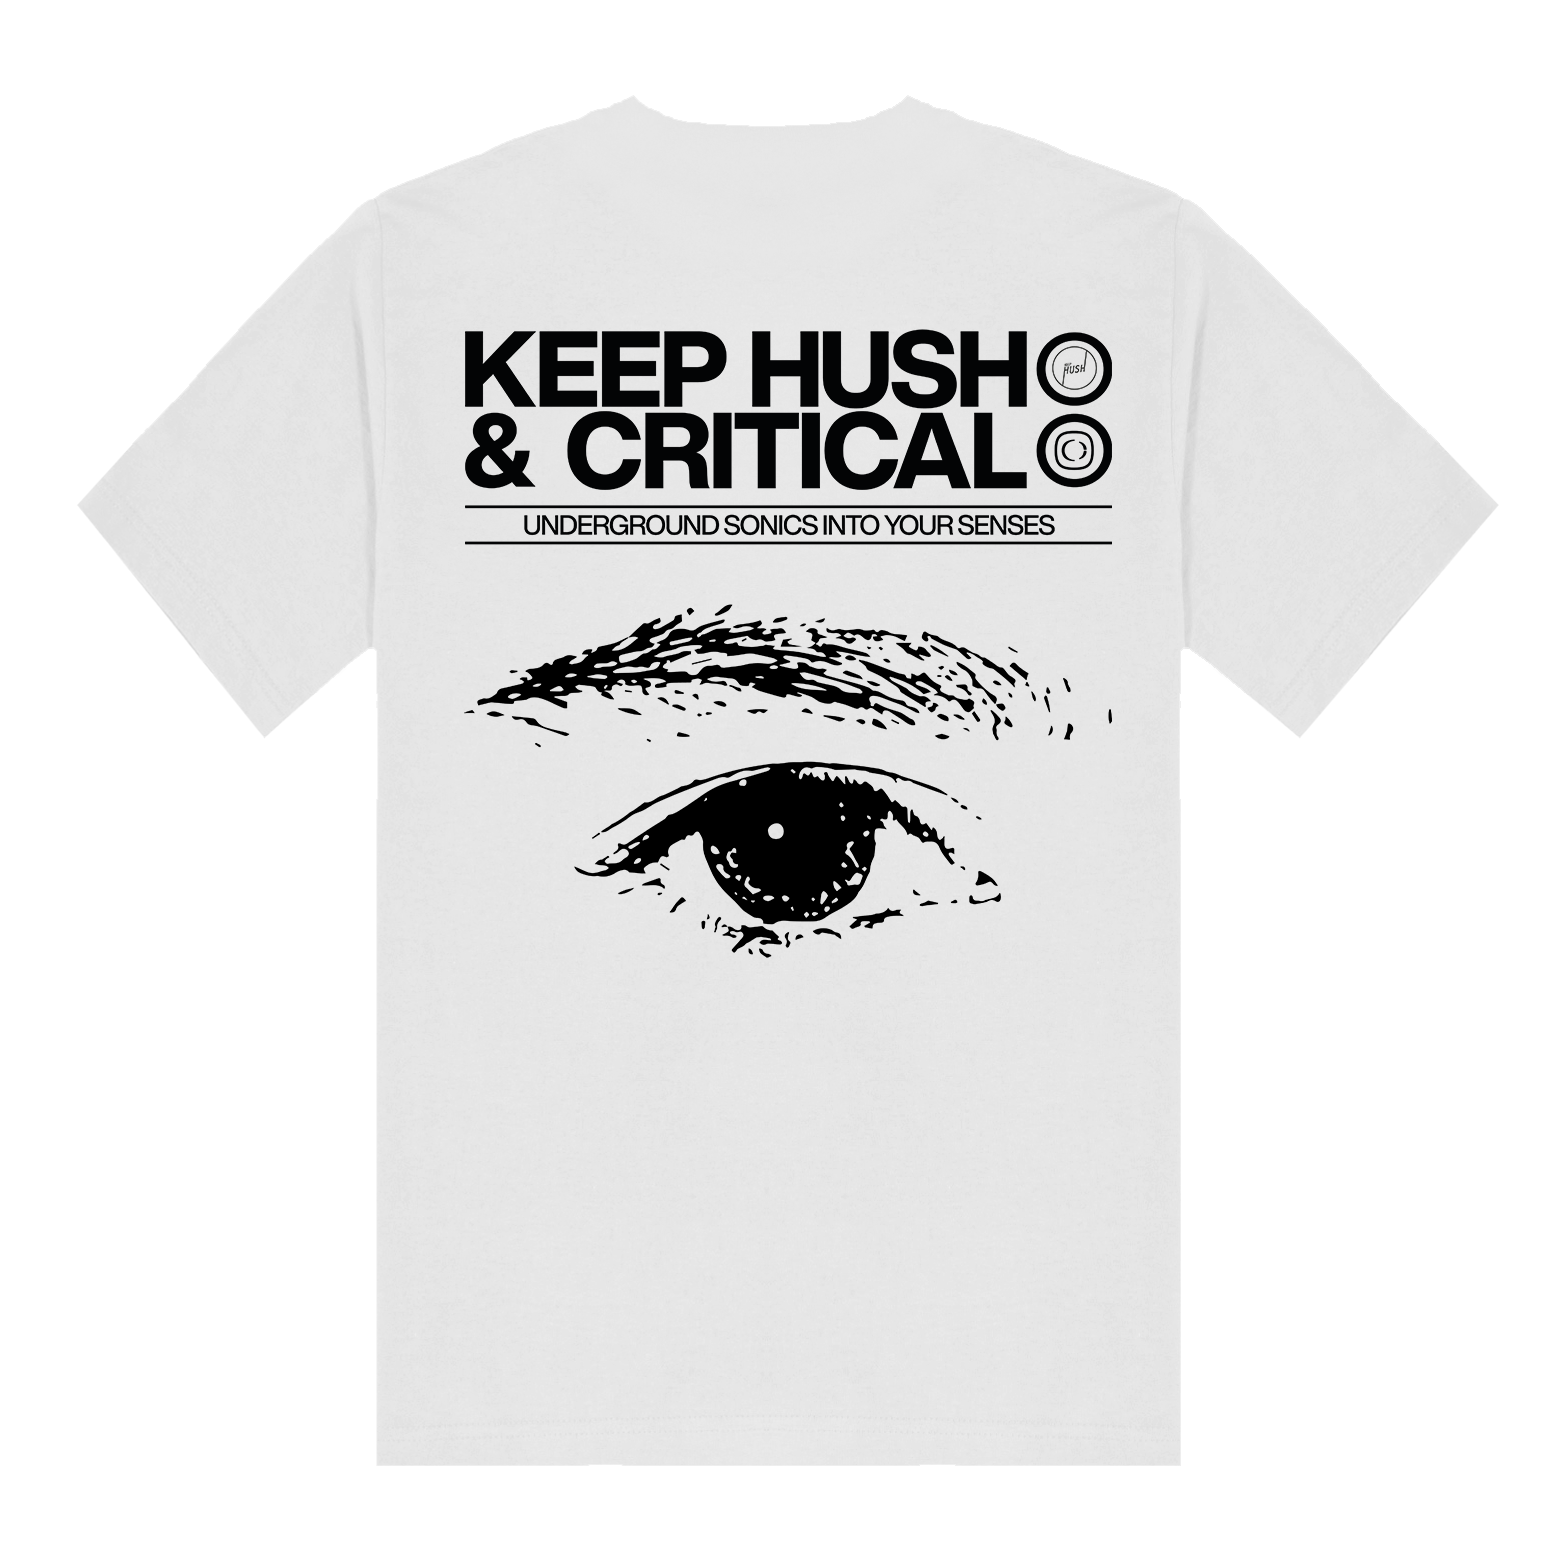 Underground Sonics Into Your Senses by Keep Hush x Critical